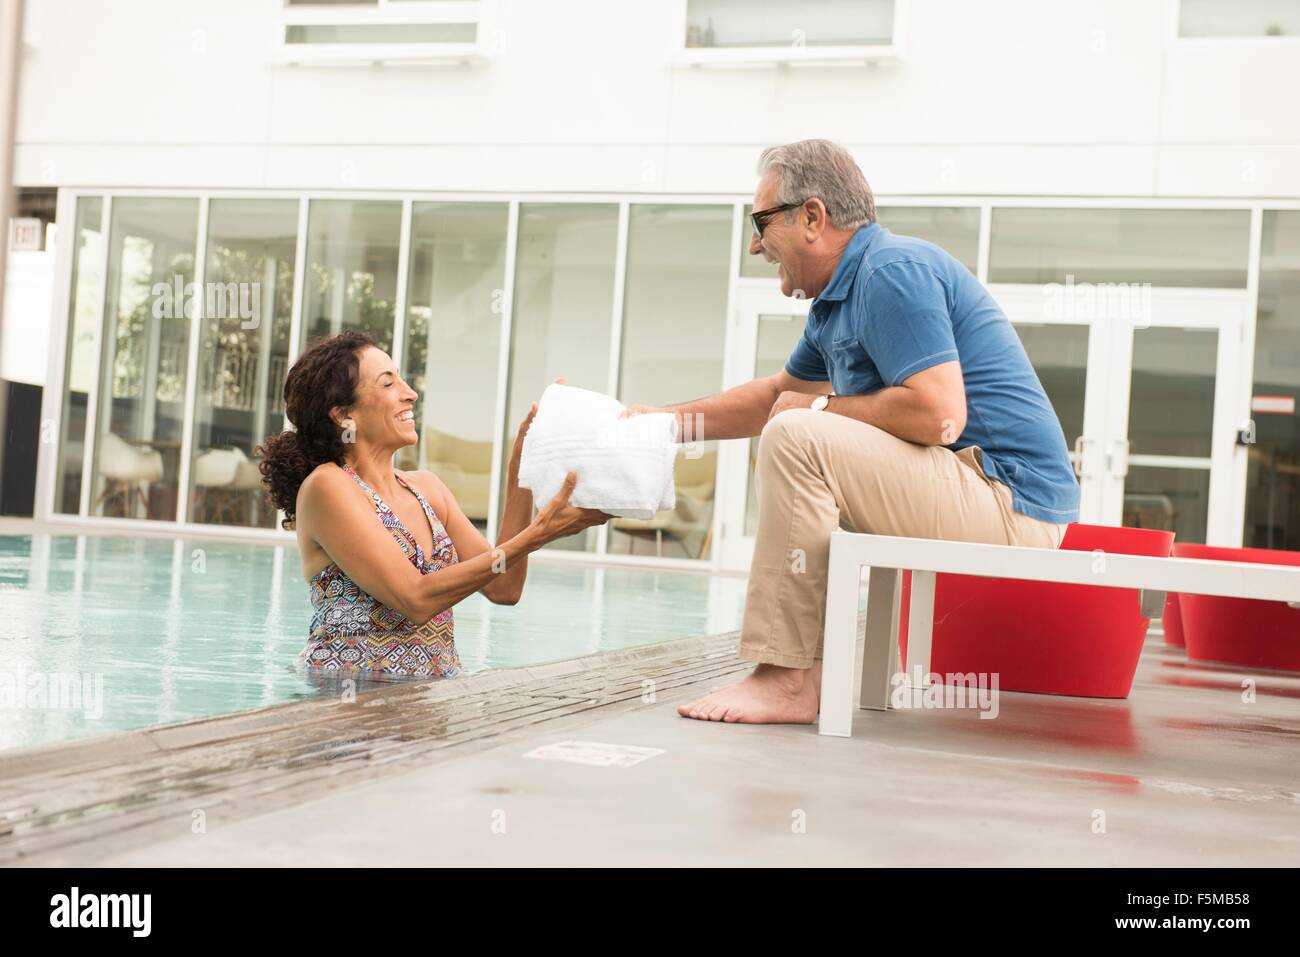 Senior man handing towel to wife from poolside - Stock Image